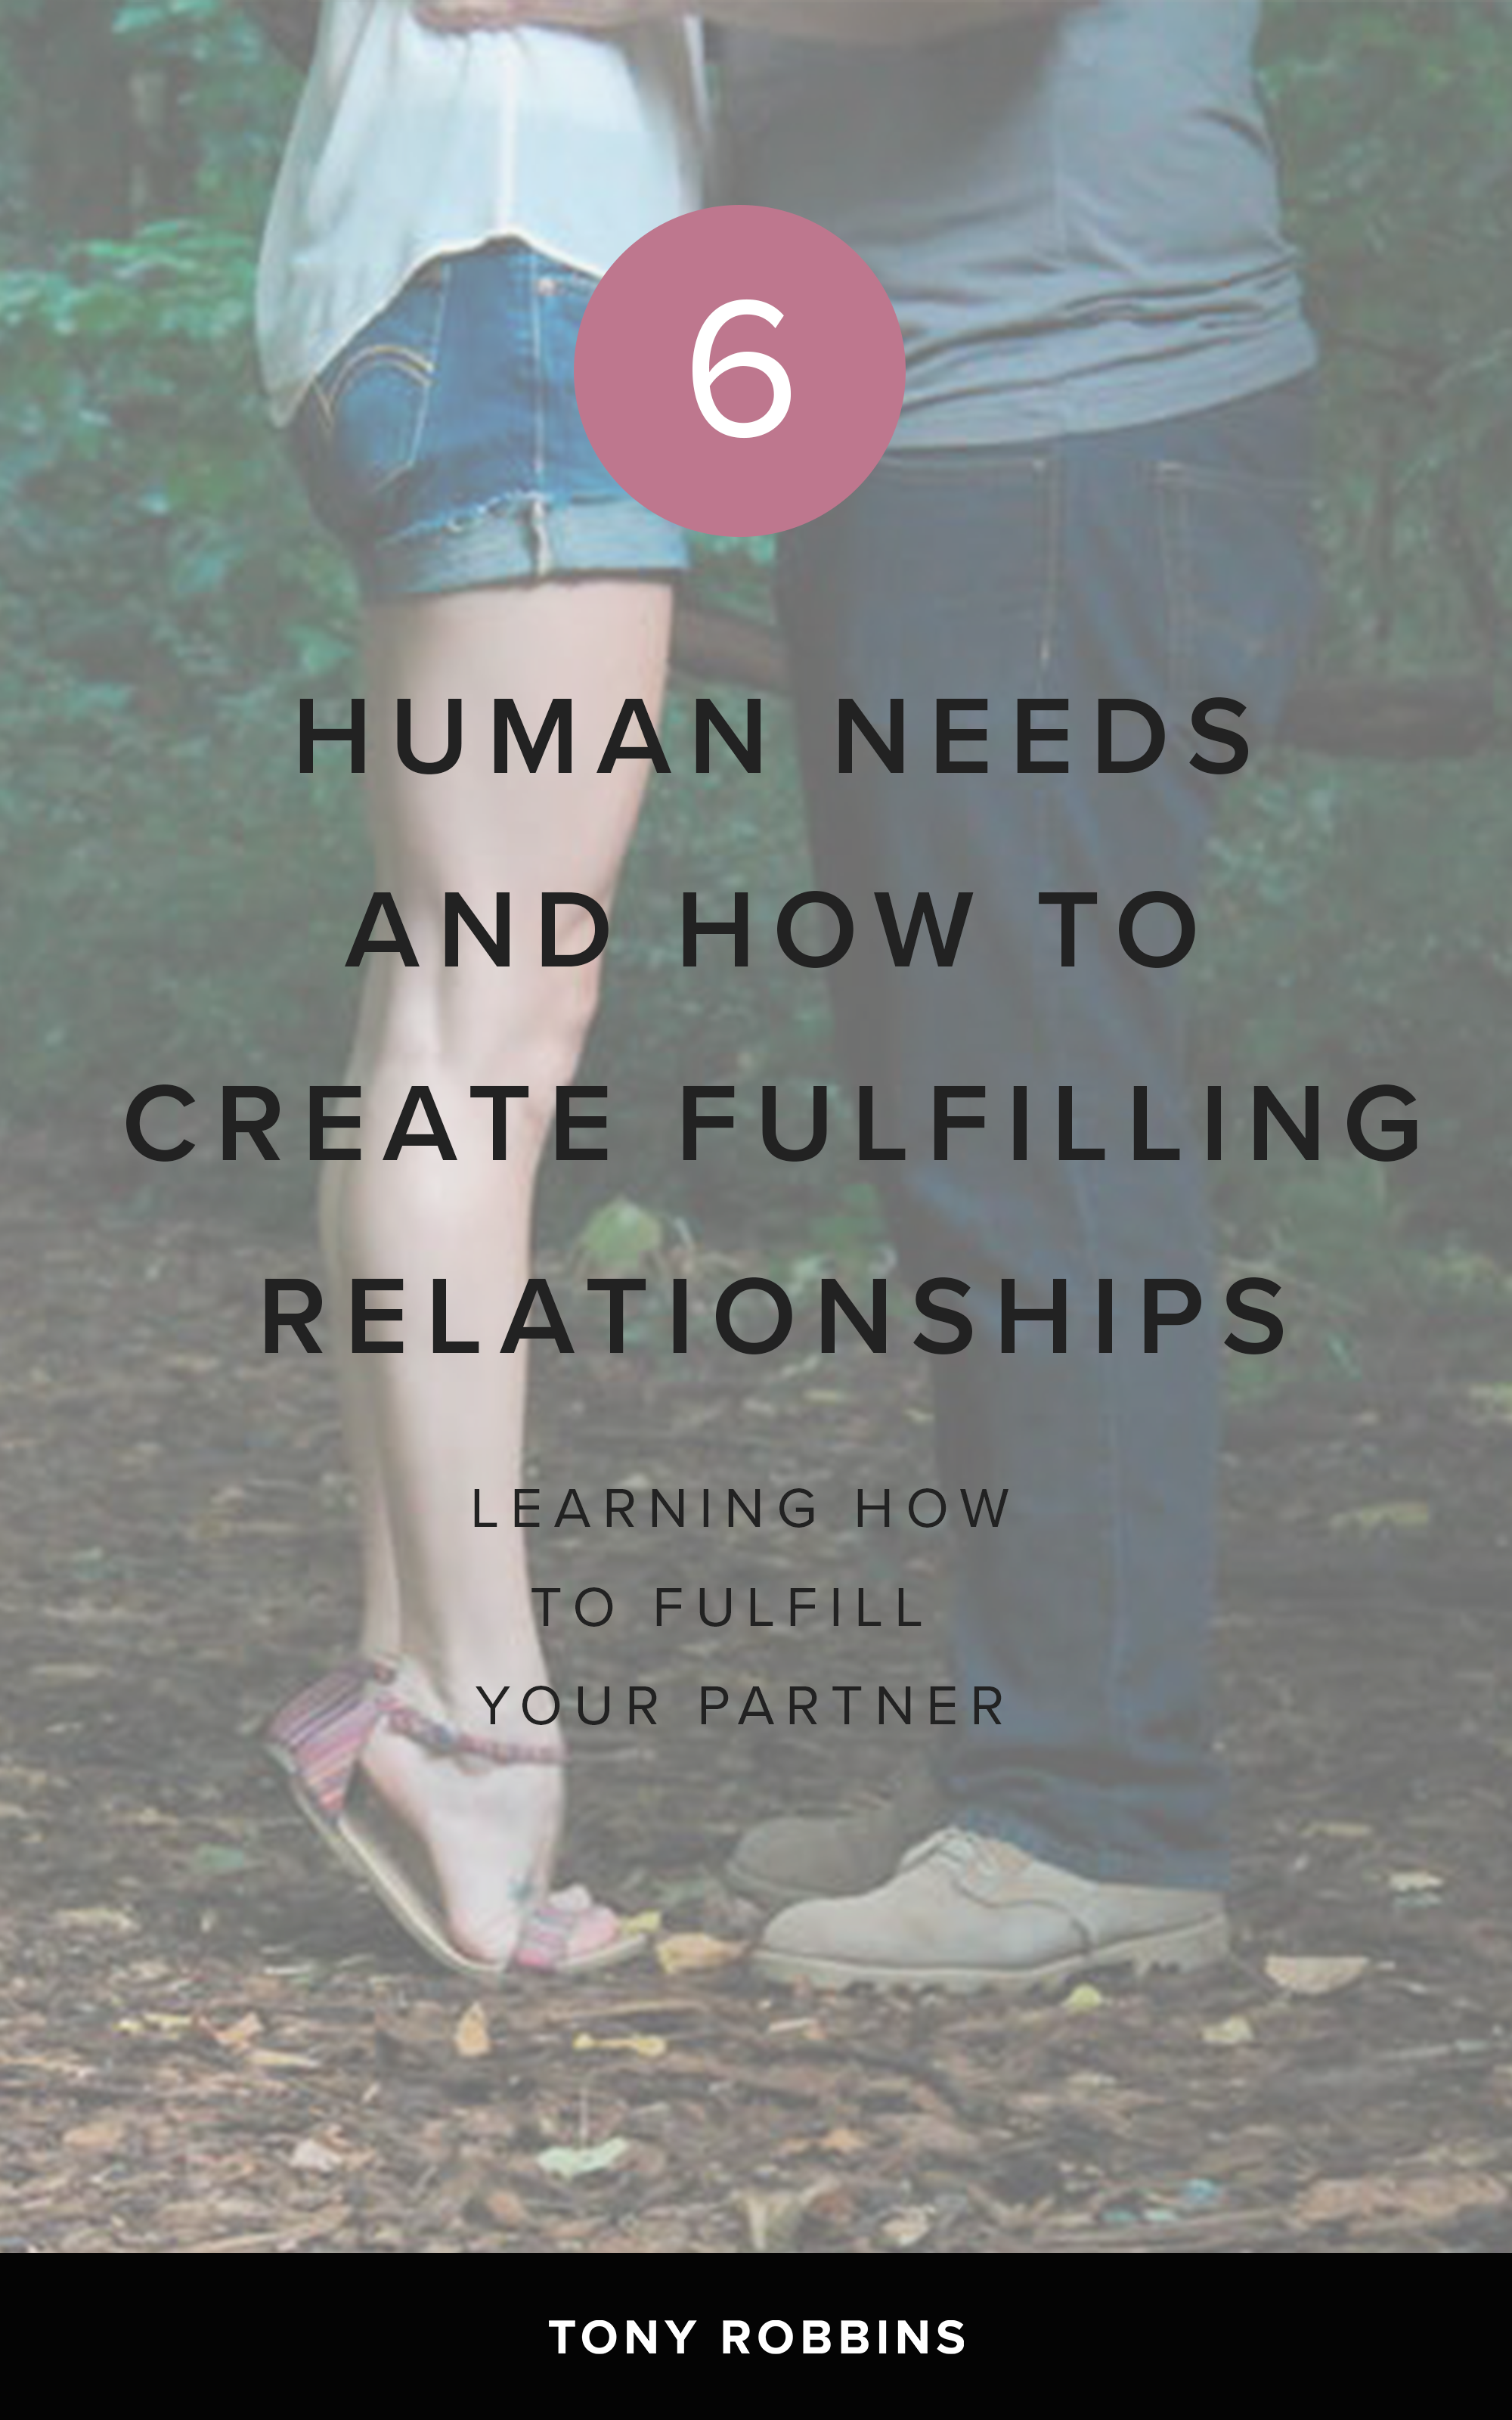 Important Human Needs To Create Fulfilling Relationships